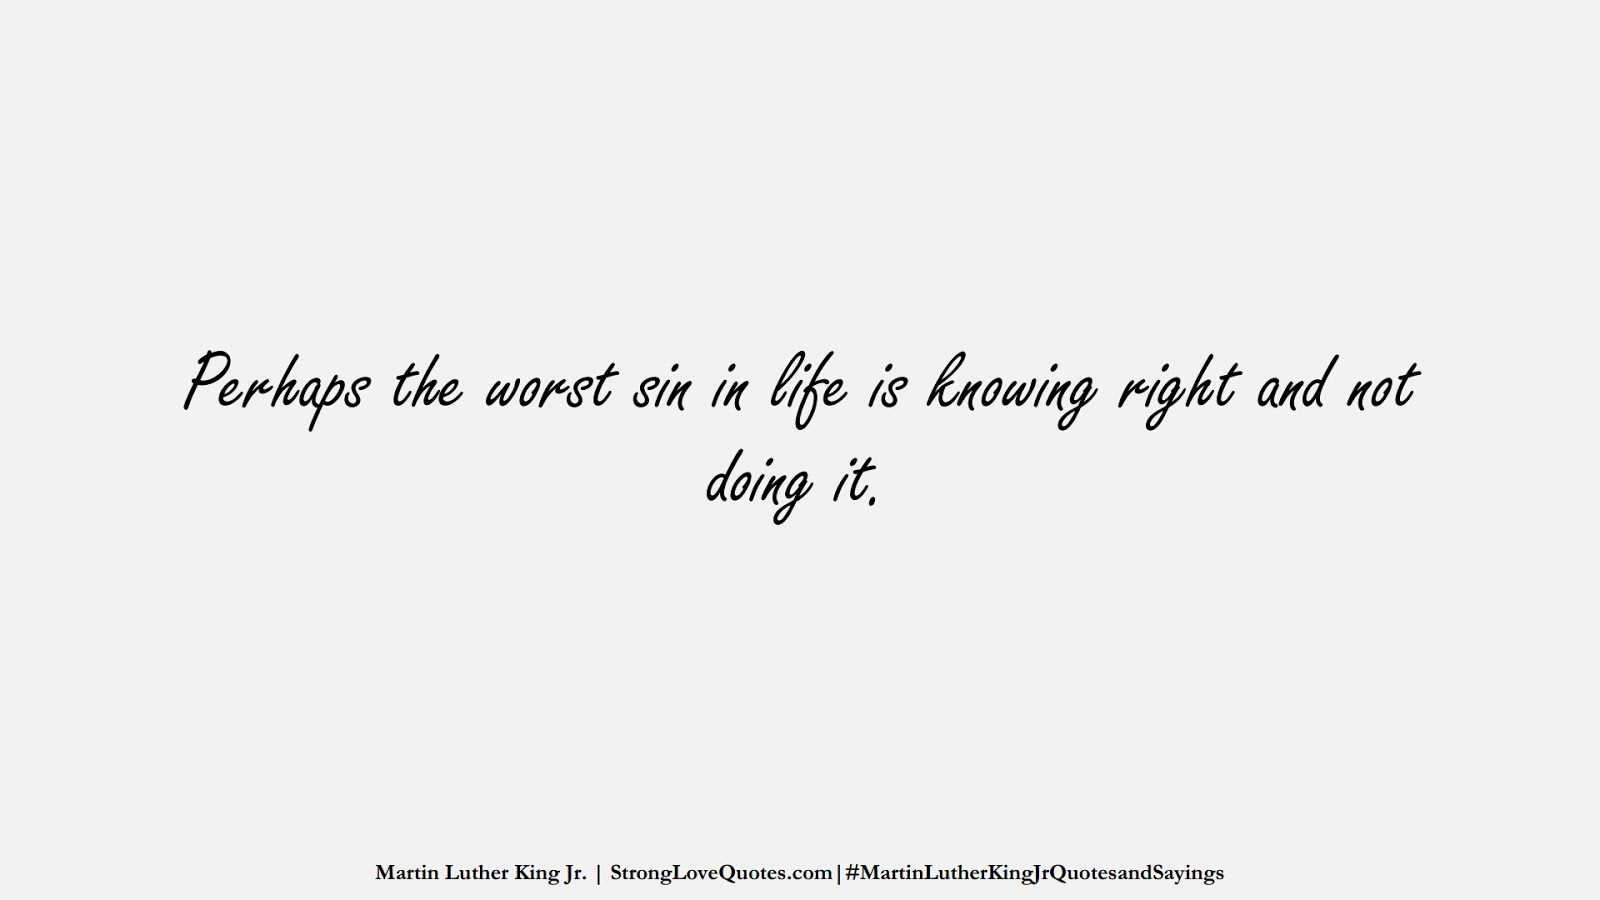 Perhaps the worst sin in life is knowing right and not doing it. (Martin Luther King Jr.);  #MartinLutherKingJrQuotesandSayings